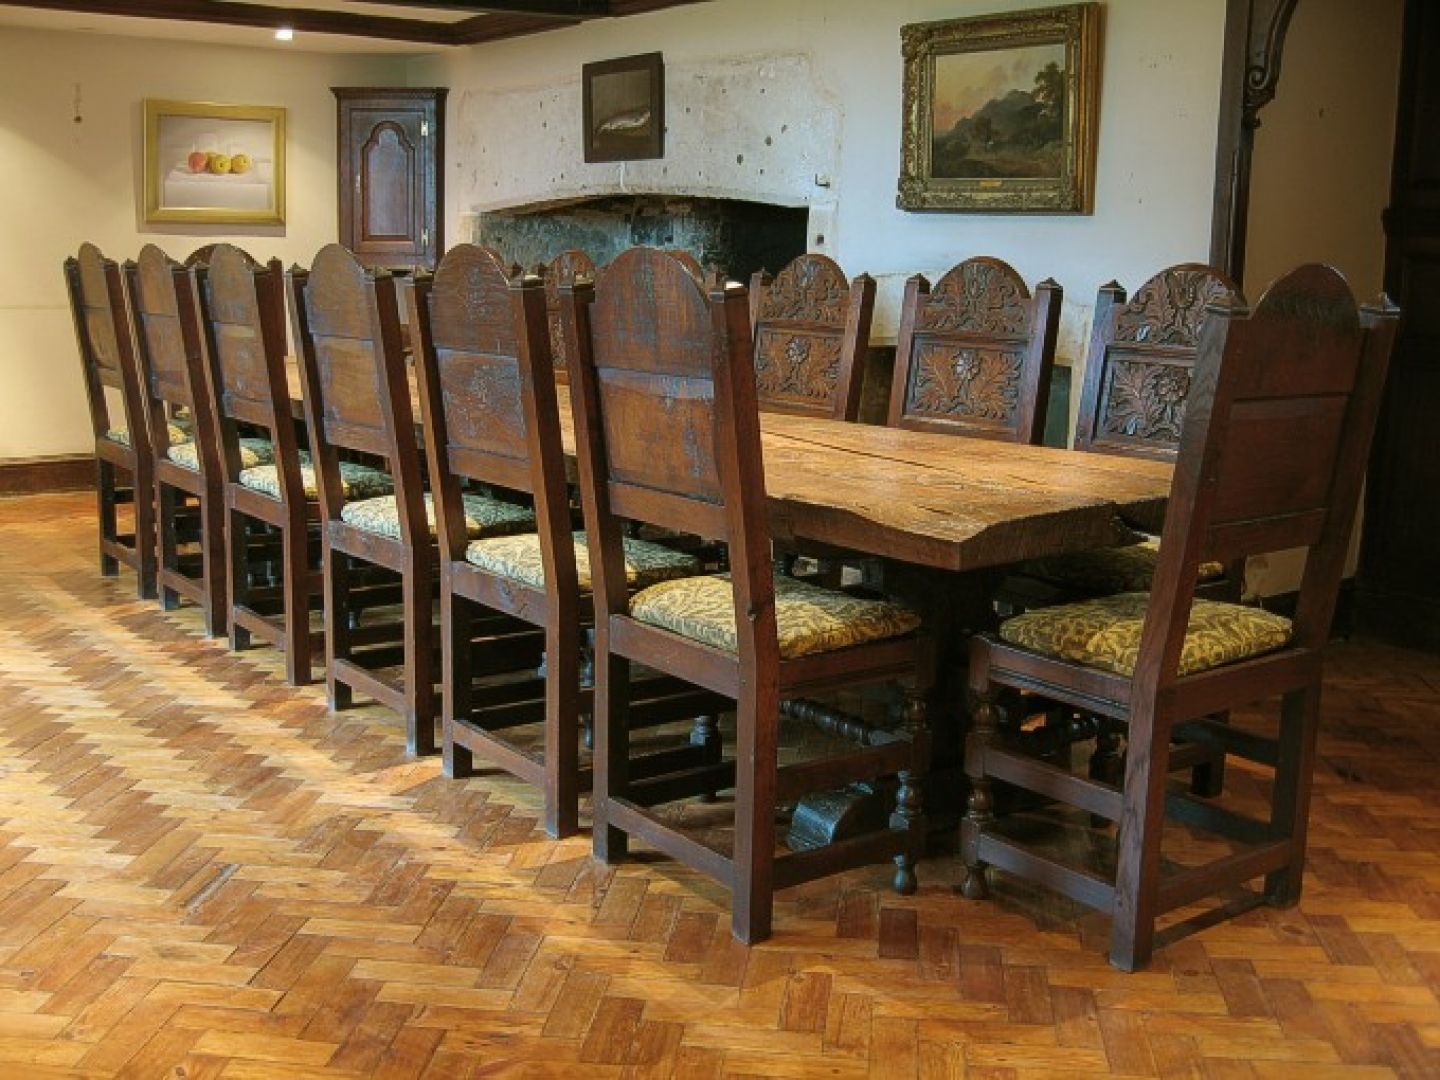 gothic dining table   chairs. gothic dining table   chairs   house   Pinterest   House